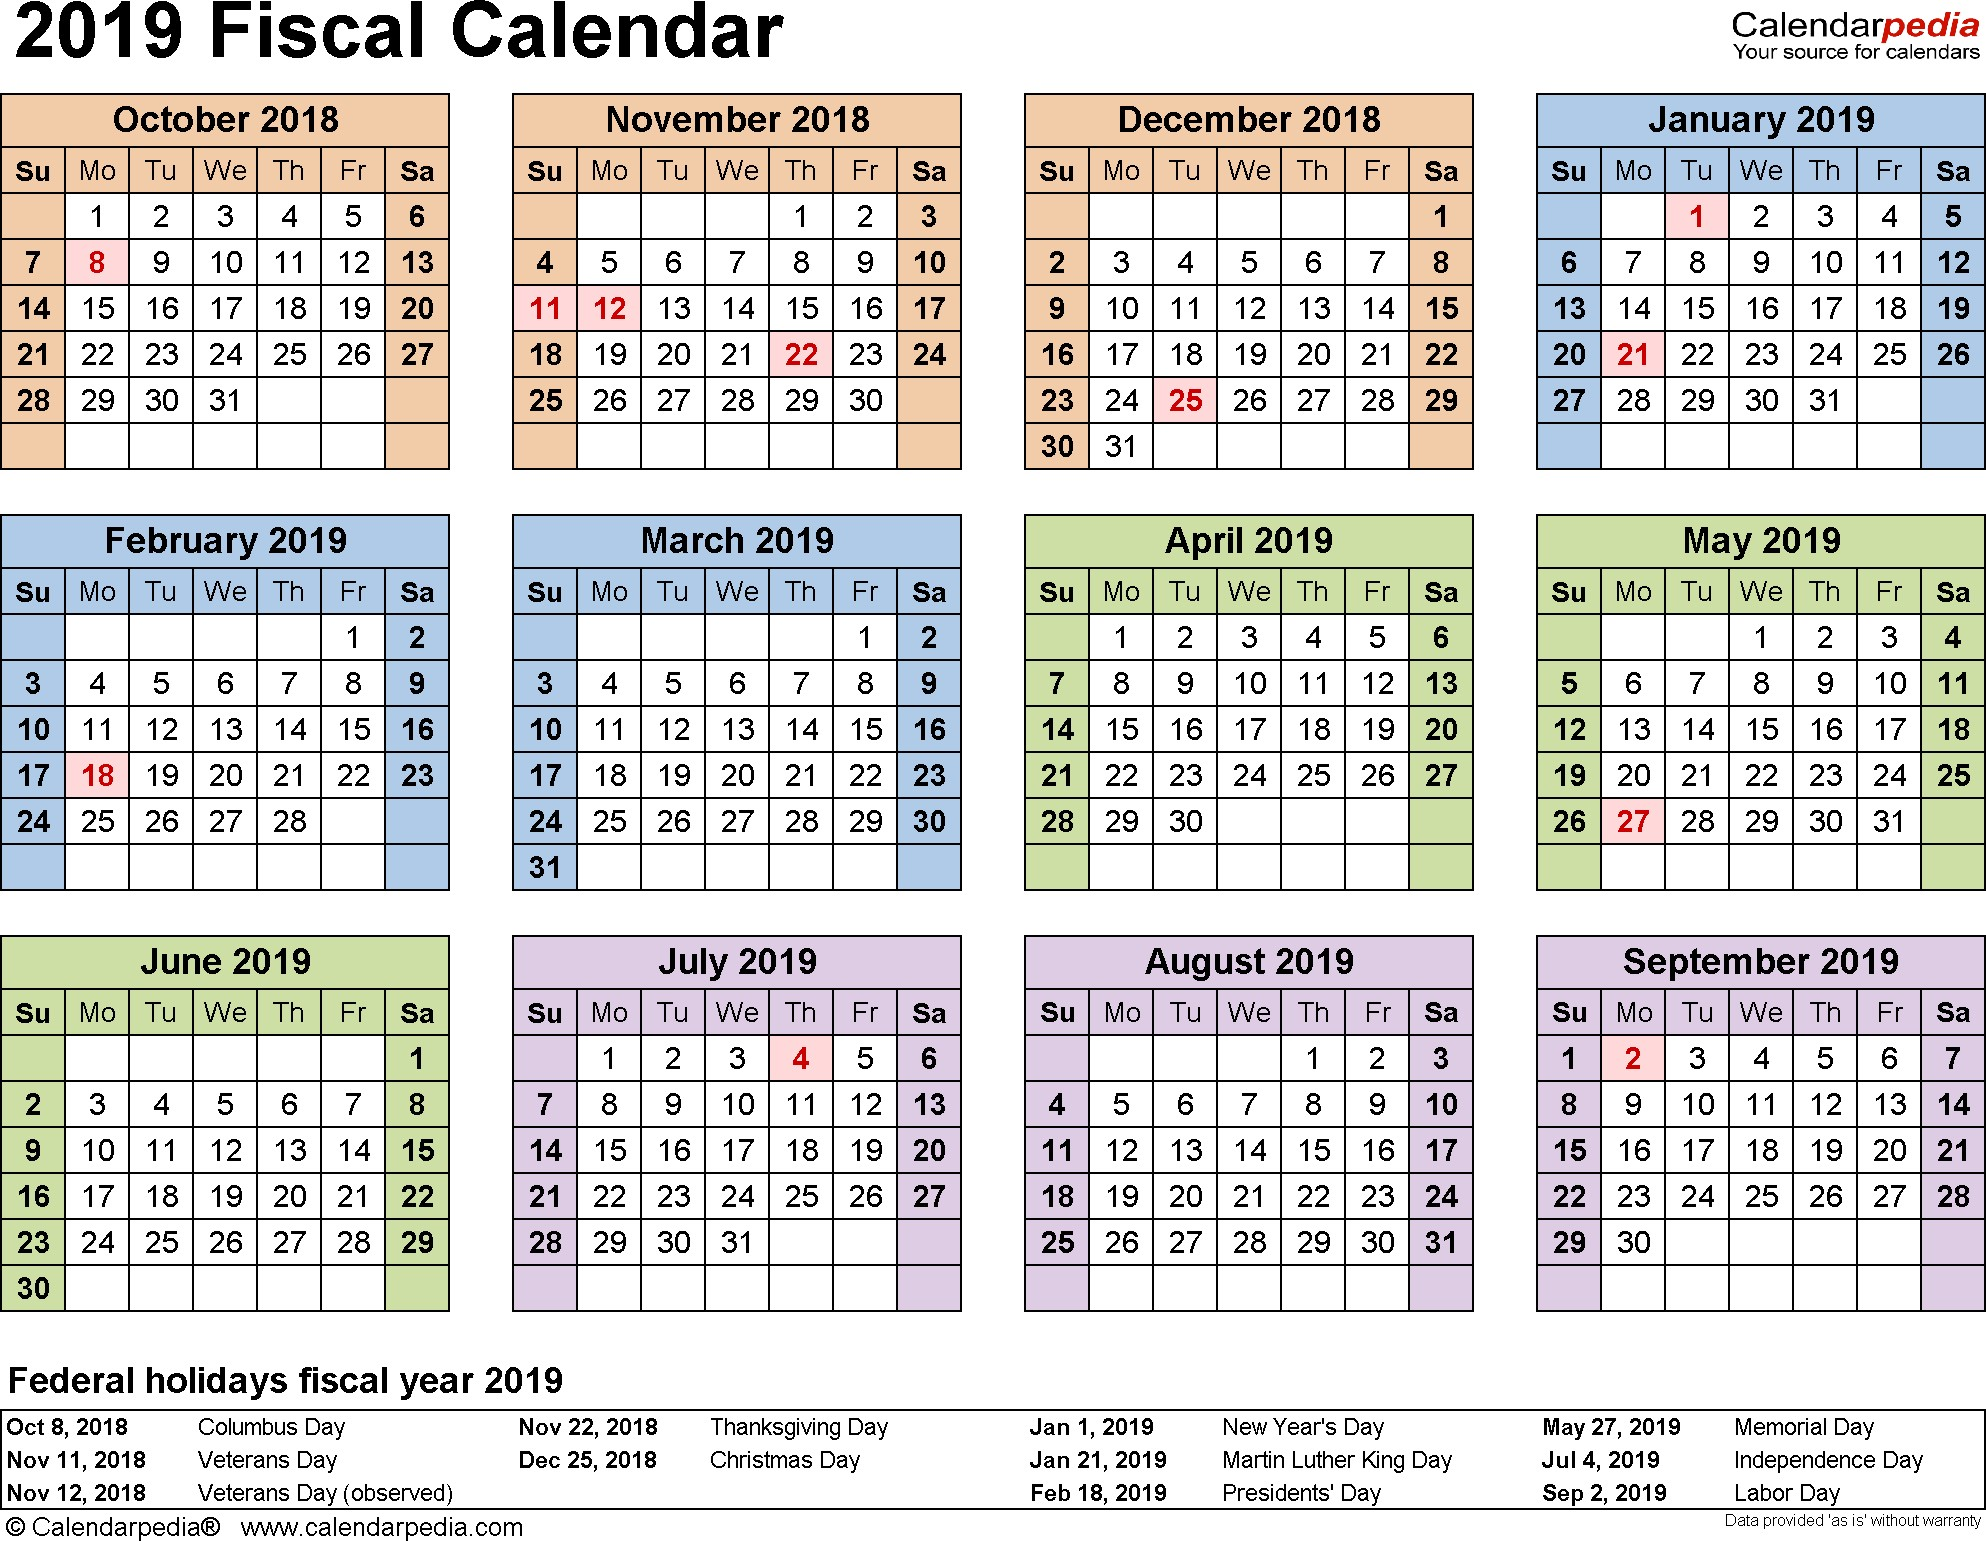 January February March Calendar Más Arriba-a-fecha Fiscal Calendars 2019 as Free Printable Word Templates Of January February March Calendar Más Caliente Baptism Seminar for Parents and Godparents Our Lady Of Peace